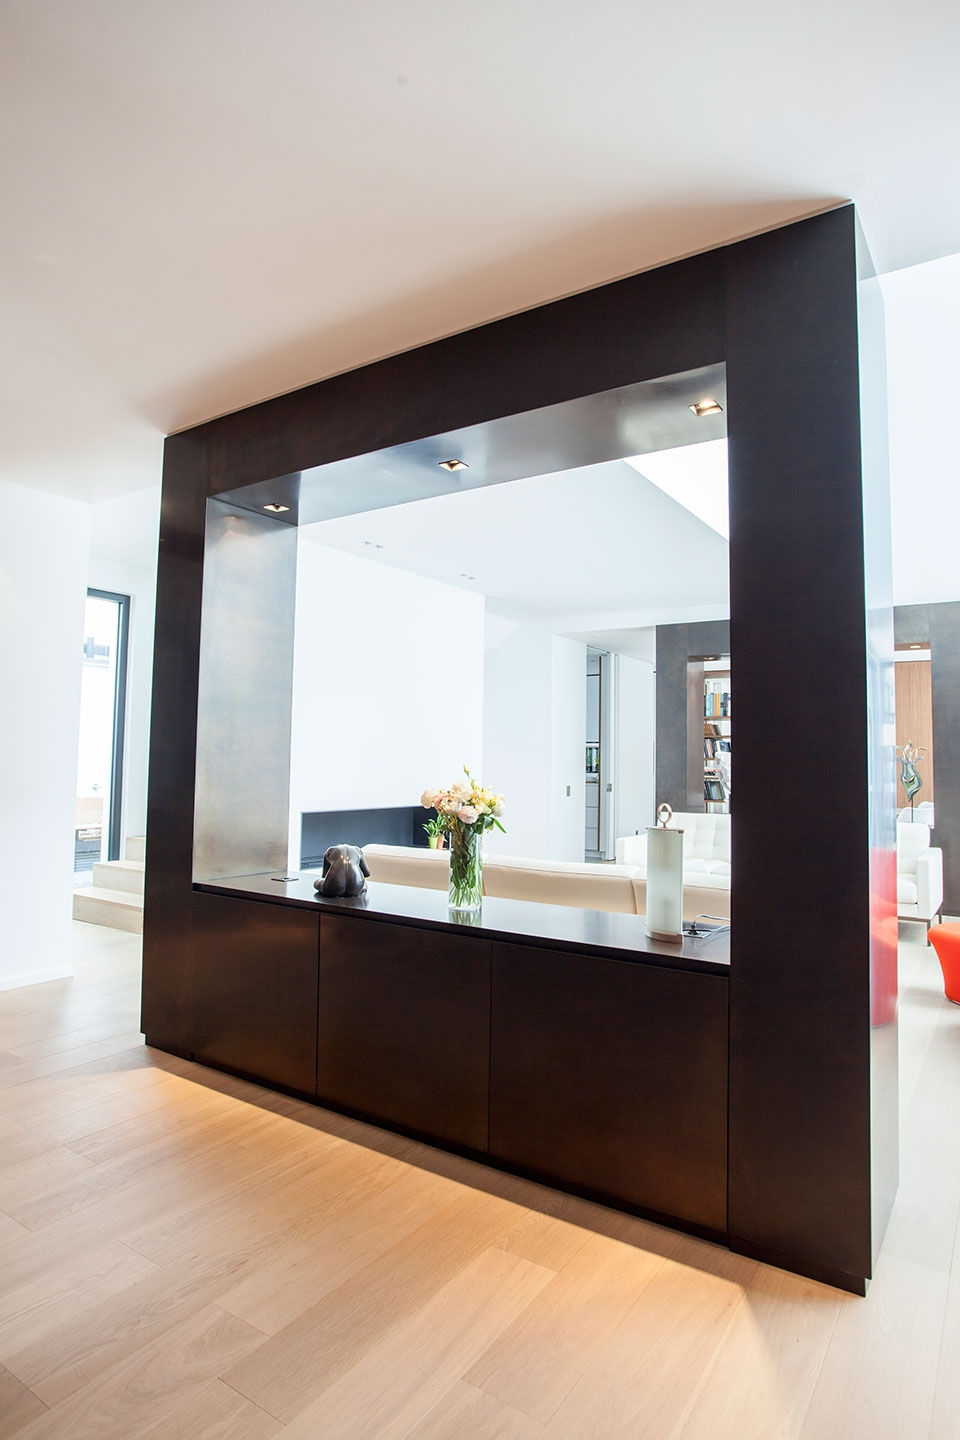 professionnels-photo-maisonarchitecte-03